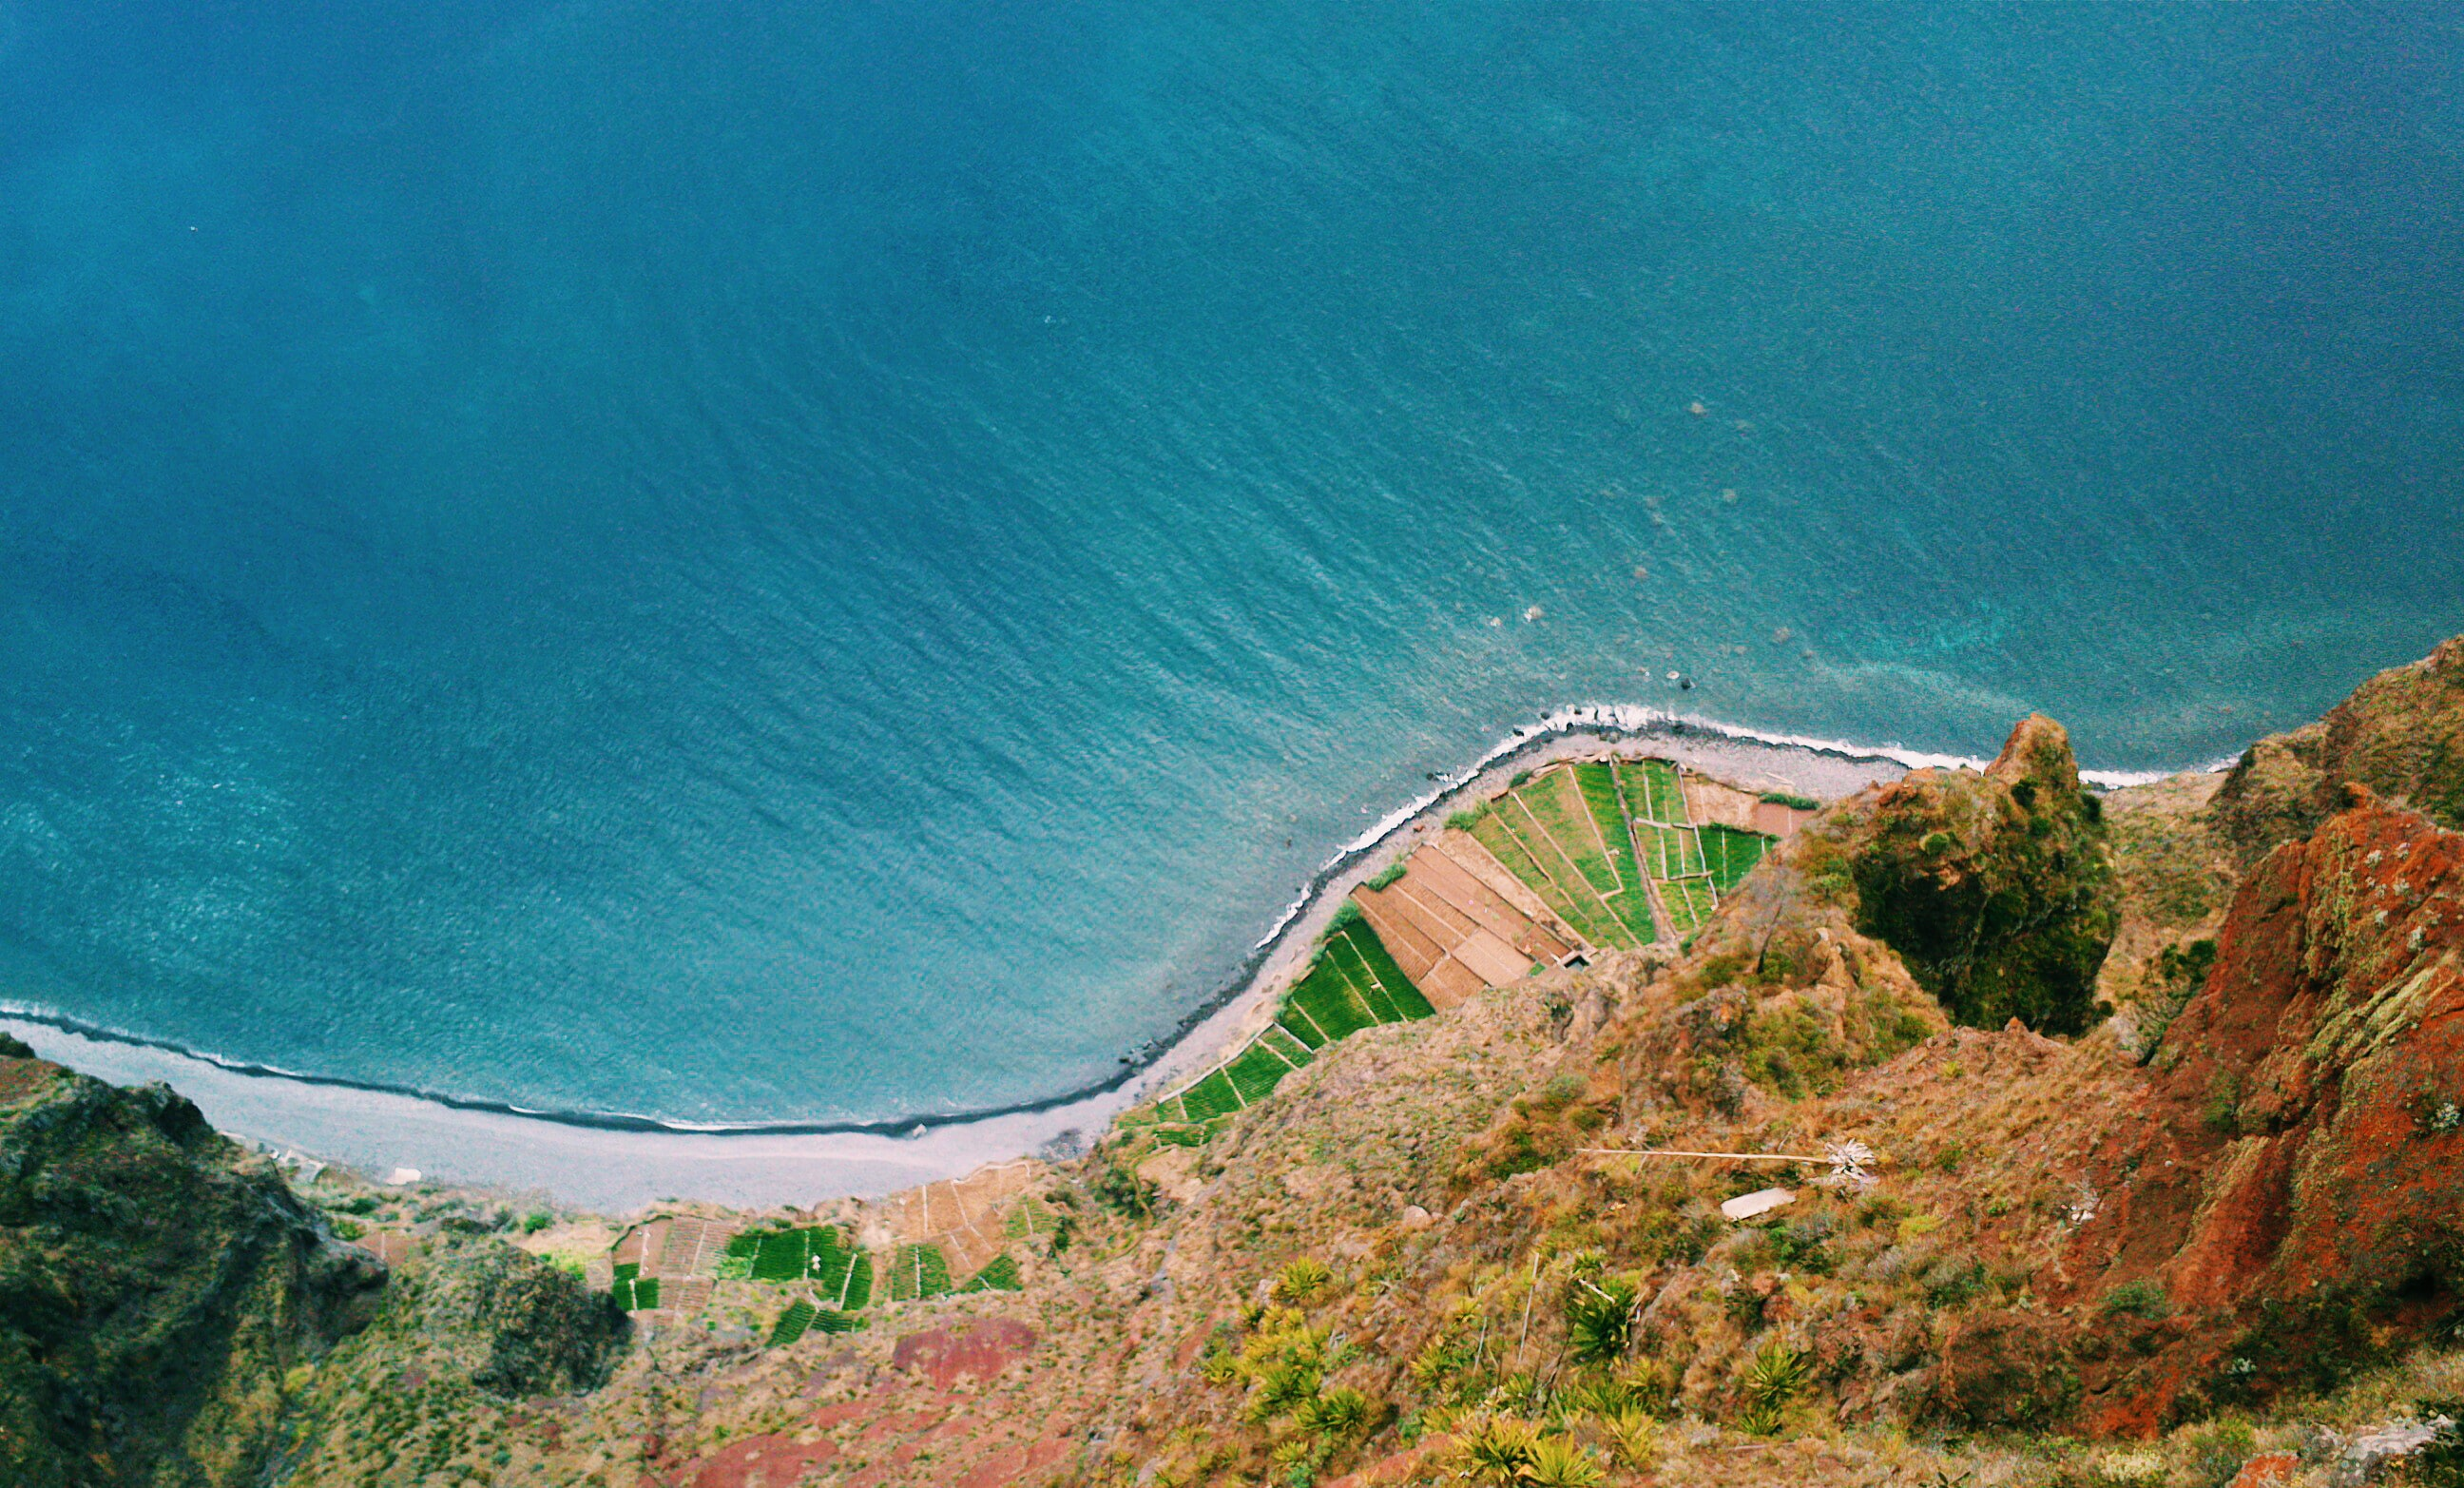 Aerial shot of the coastline, beach, trees and cliff face